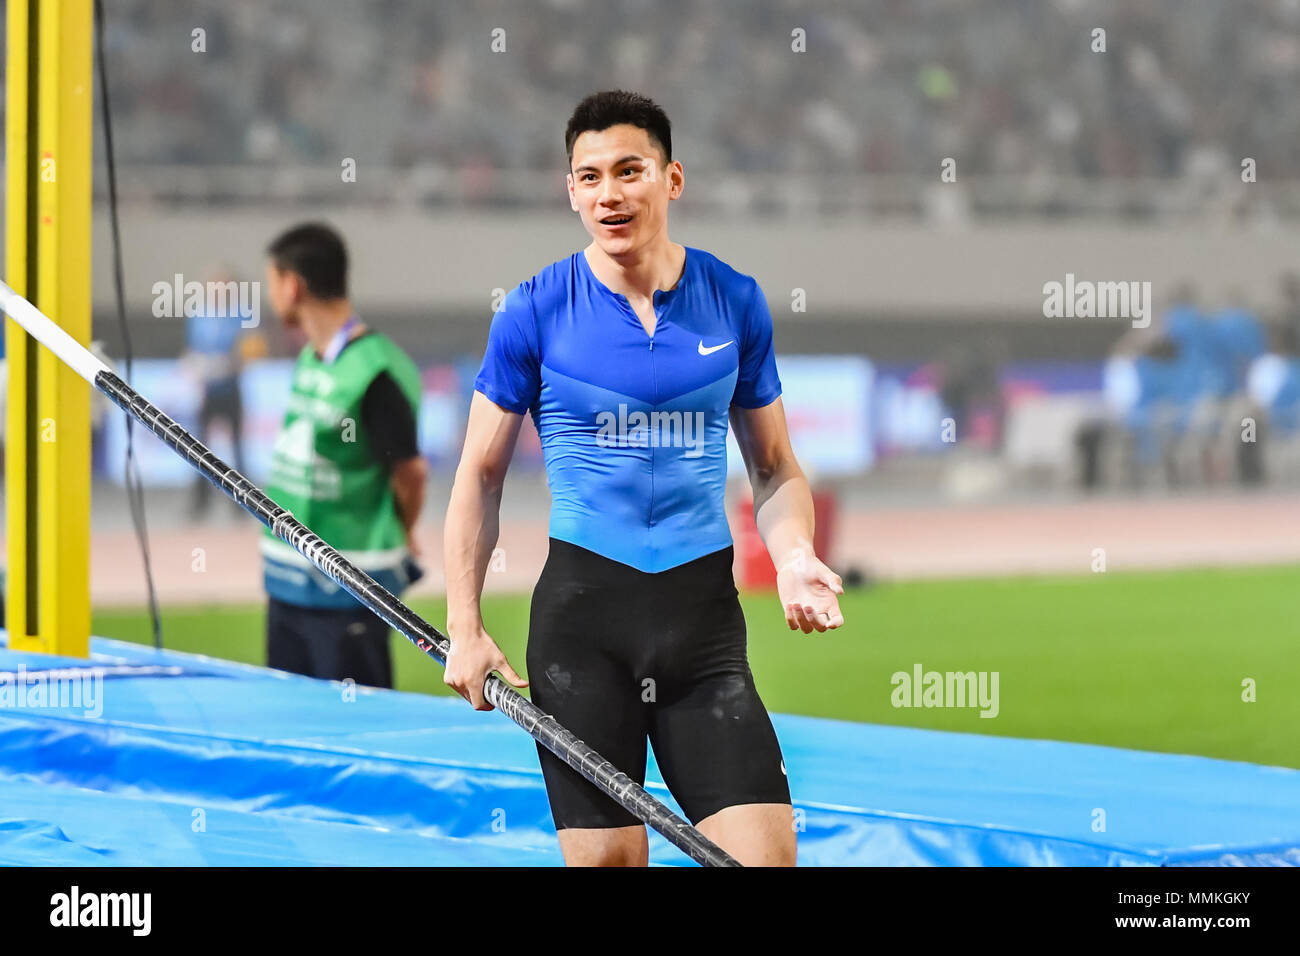 Shanghai, China. 12th May 2018. Jao Jie (CHN) was happy with the result during 2018 IAAF Shanghai Diamond League: MEN'S POLE VAULT at Shanghai Stadium on Saturday, 12 May 2018. SHANGHAI, CHINA. Credit: Taka G Wu Credit: Taka Wu/Alamy Live News - Stock Image